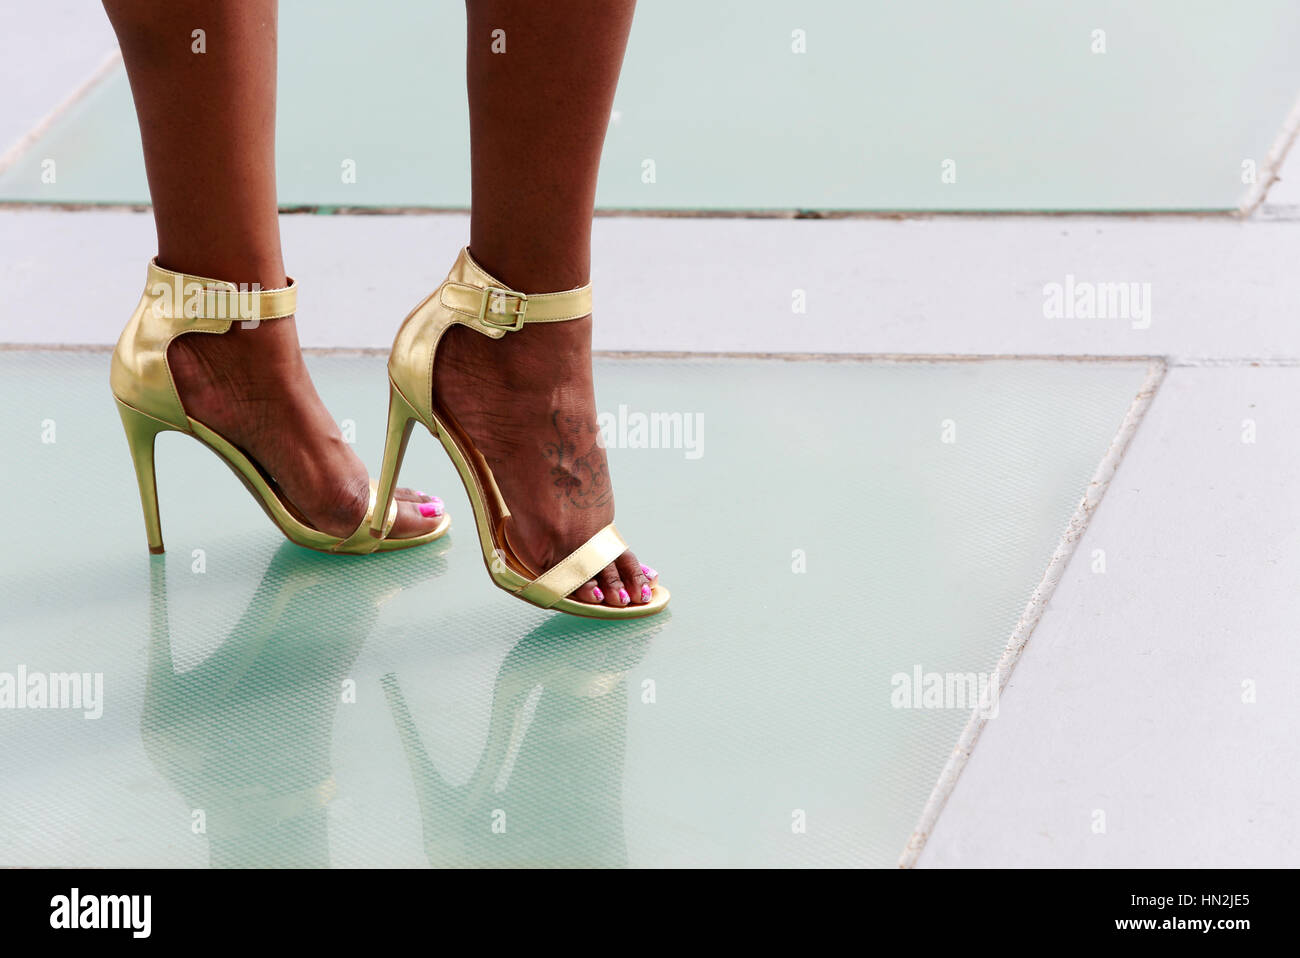 ce179666b76 Legs of Beautiful African American woman in golden high heels shoes ...